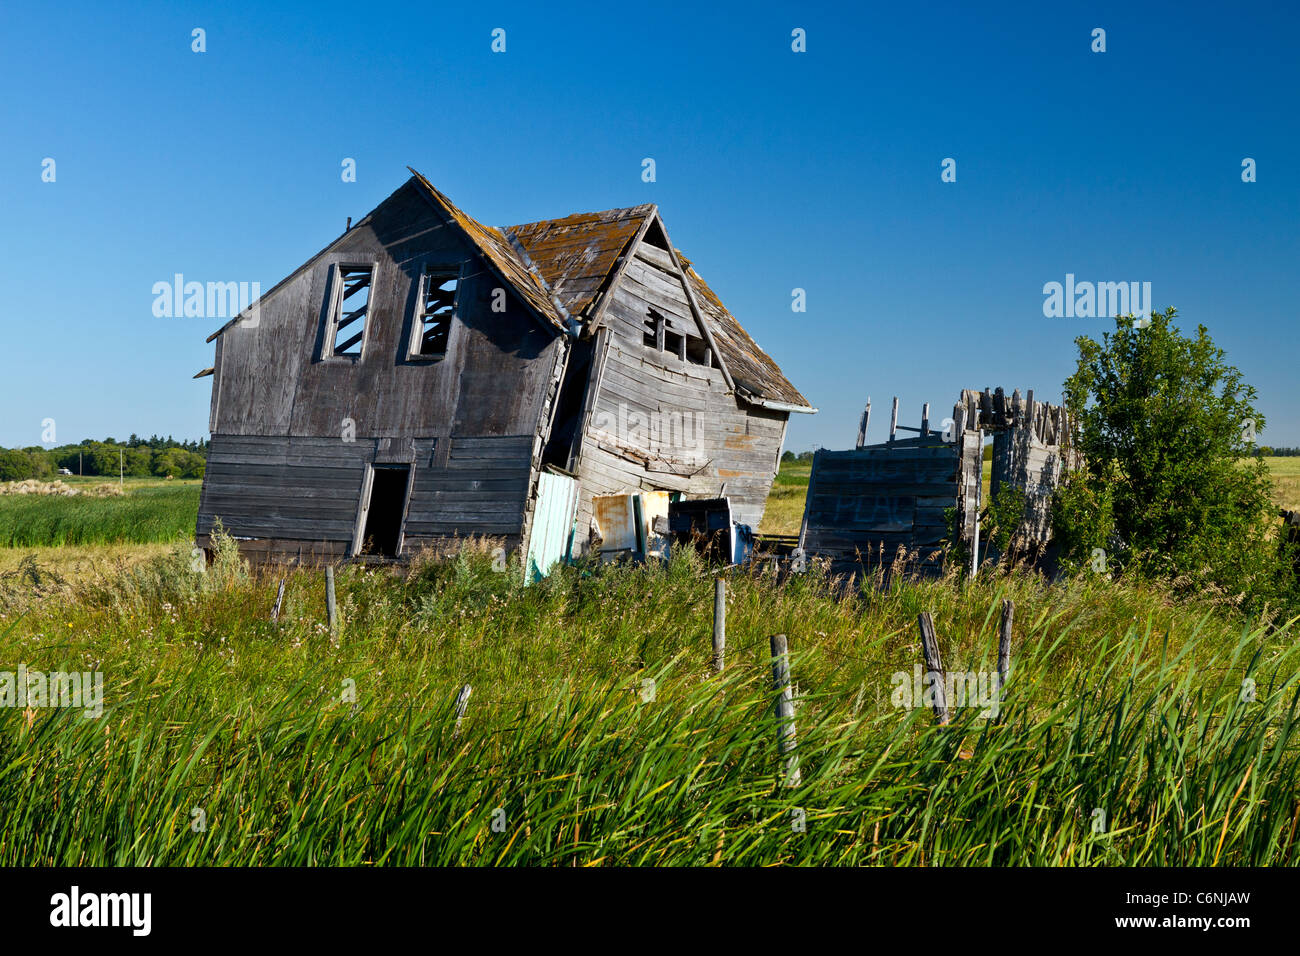 An old house in disrepair in rural western Manitoba, Canada. - Stock Image